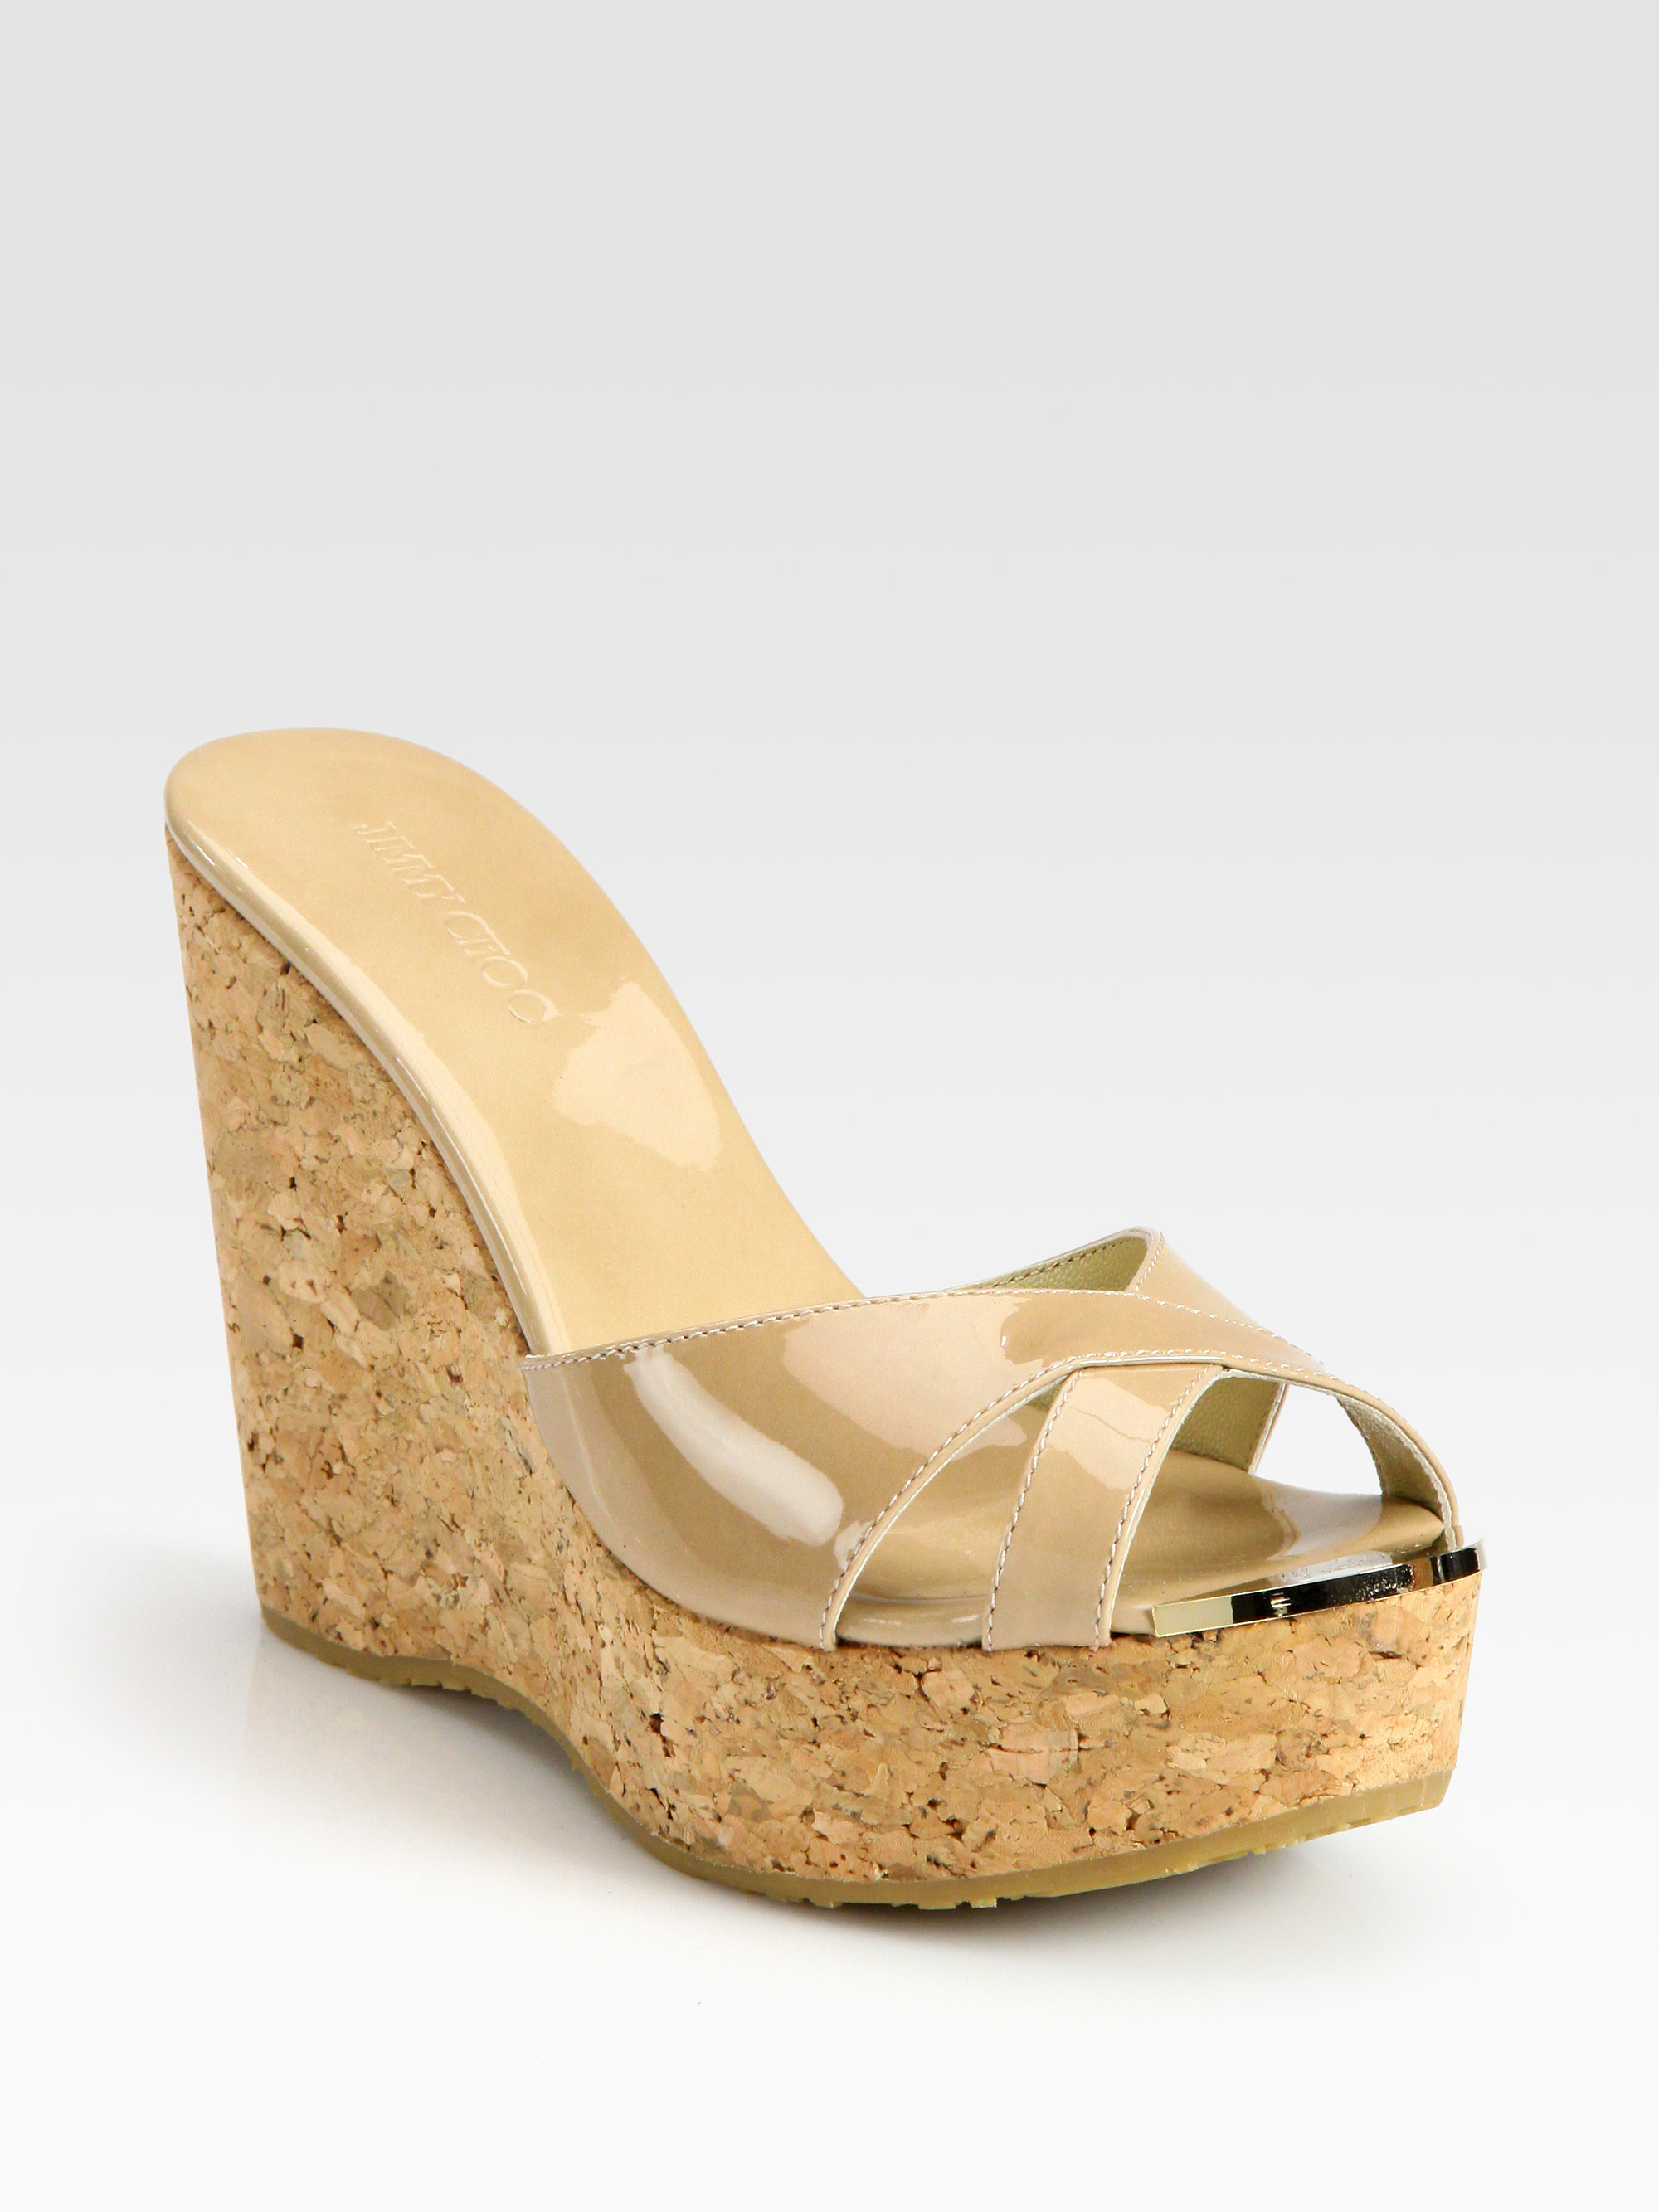 Cork Leather Shoes